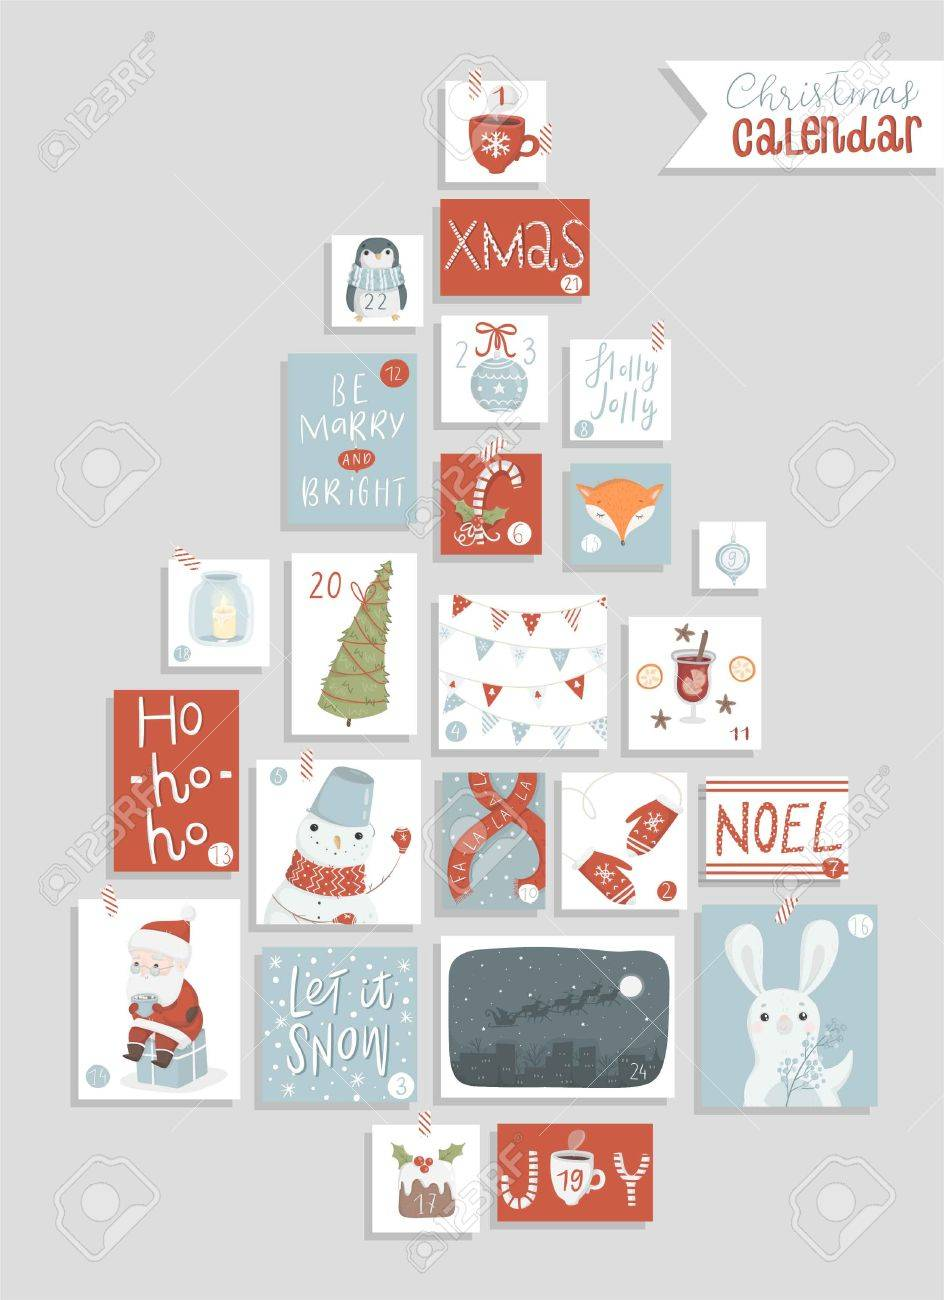 graphic regarding Printable Christmas Calendar identify Xmas introduction calendar, lovable hand drawn layout. 20 4..